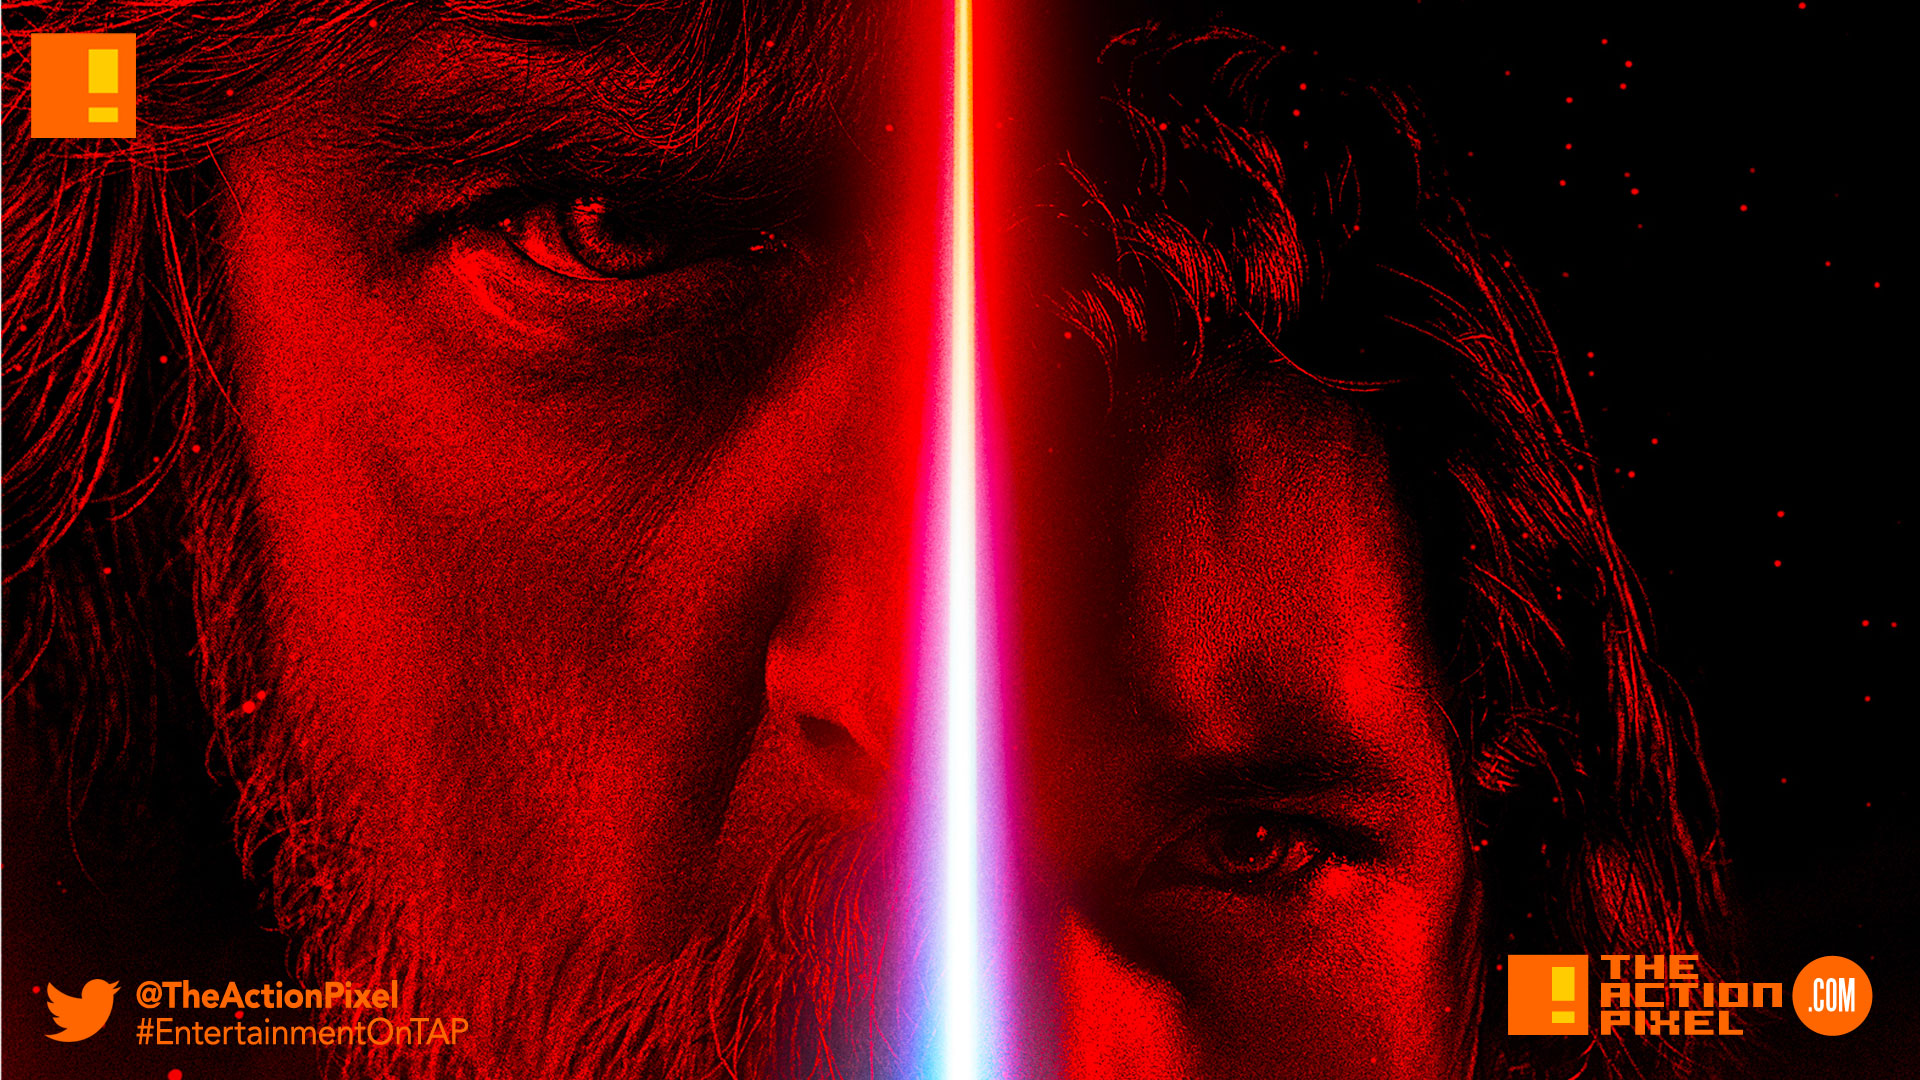 star wars, the last jedi, jedi, star wars: the last jedi, the action pixel, entertainment on tap,poster